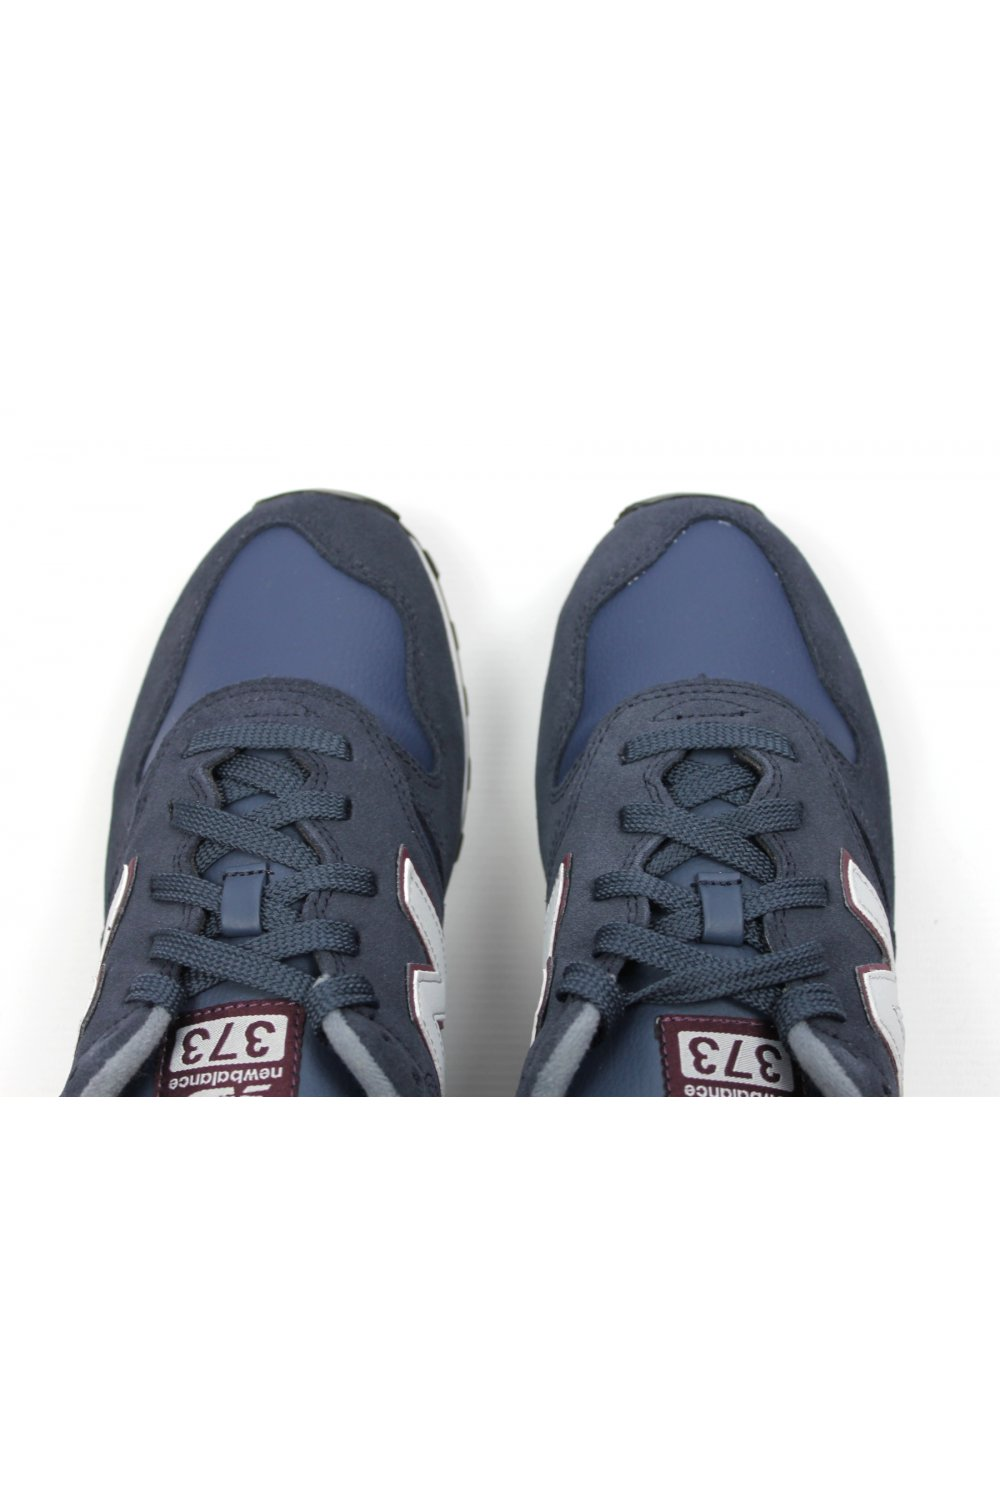 new balance 373 navy suede